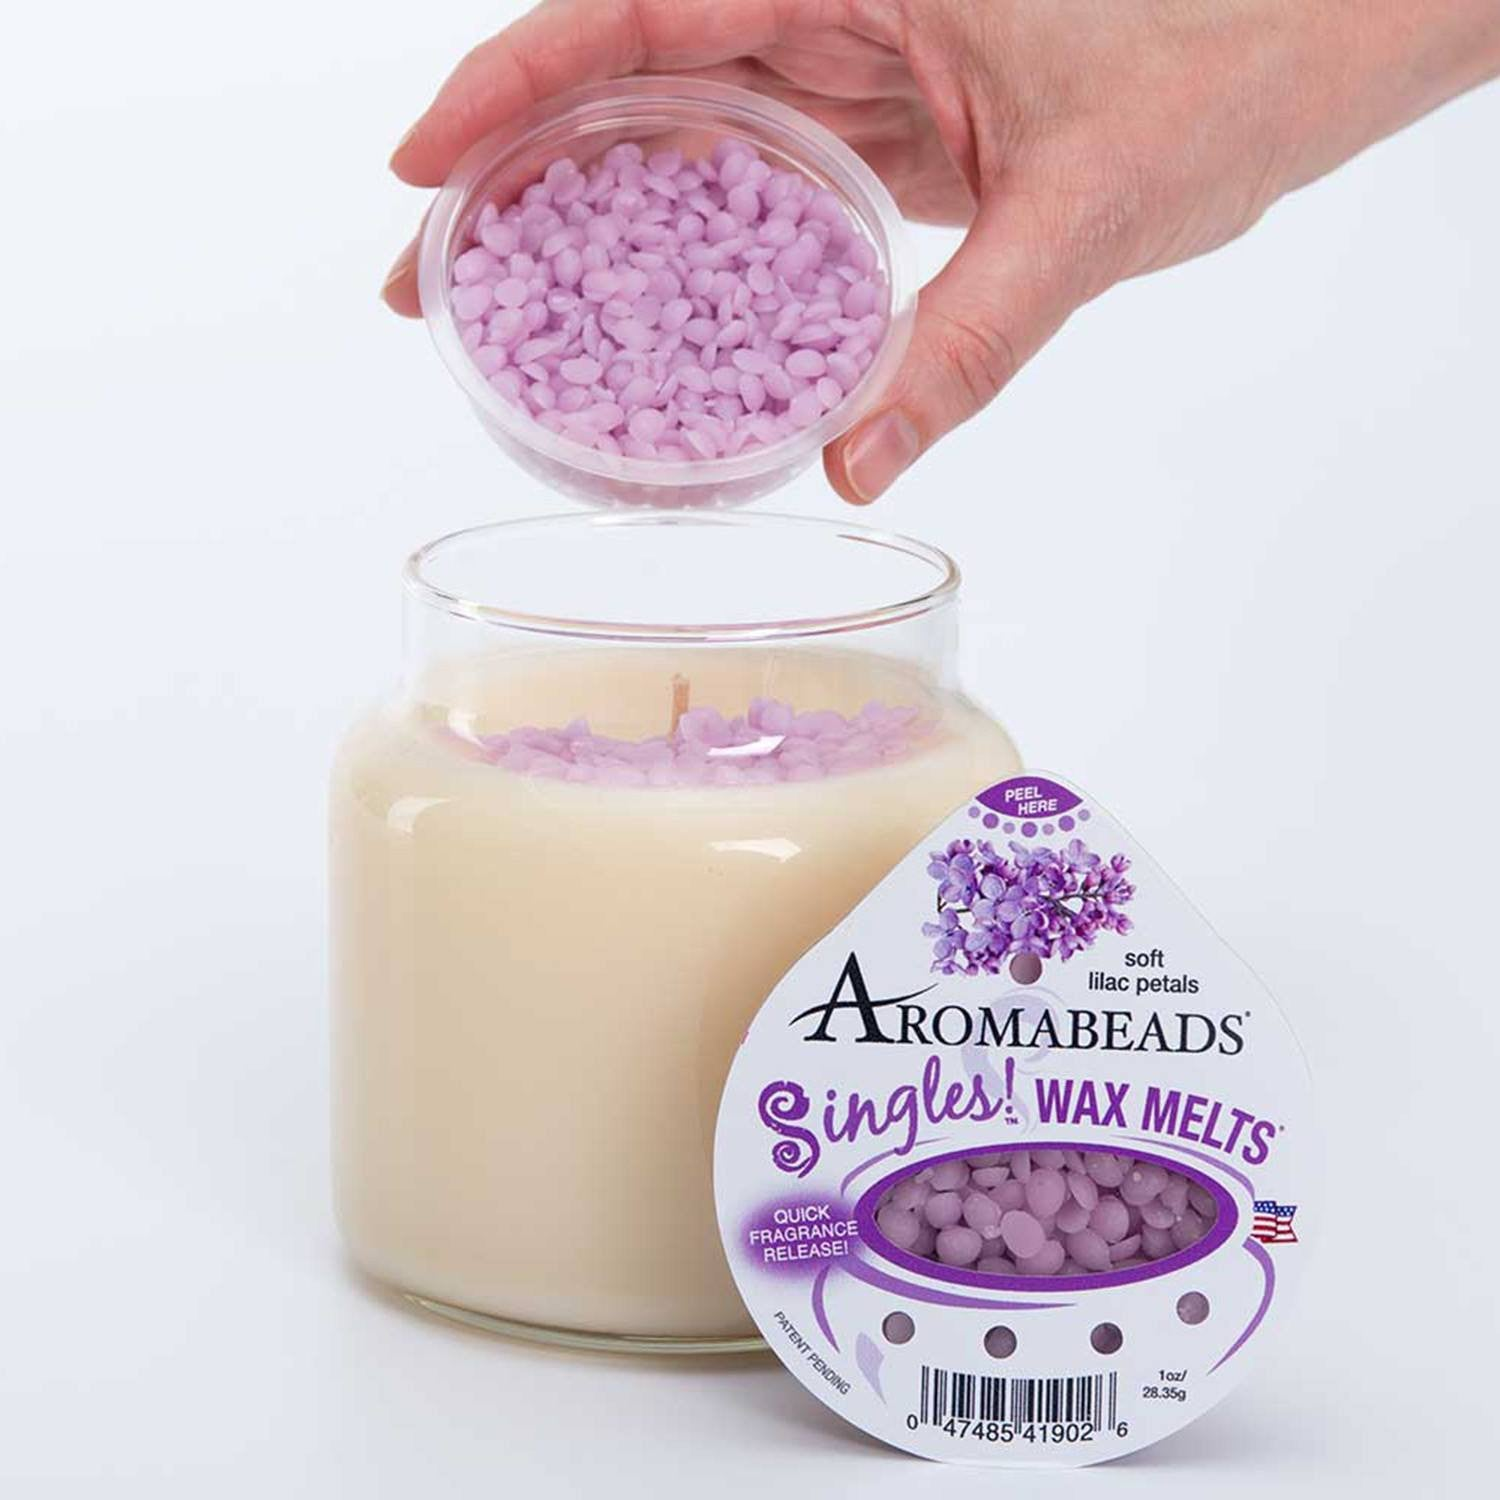 Aromabeads Singles Sweet Dreams Scented Wax Melts - Candlemart.com - 2